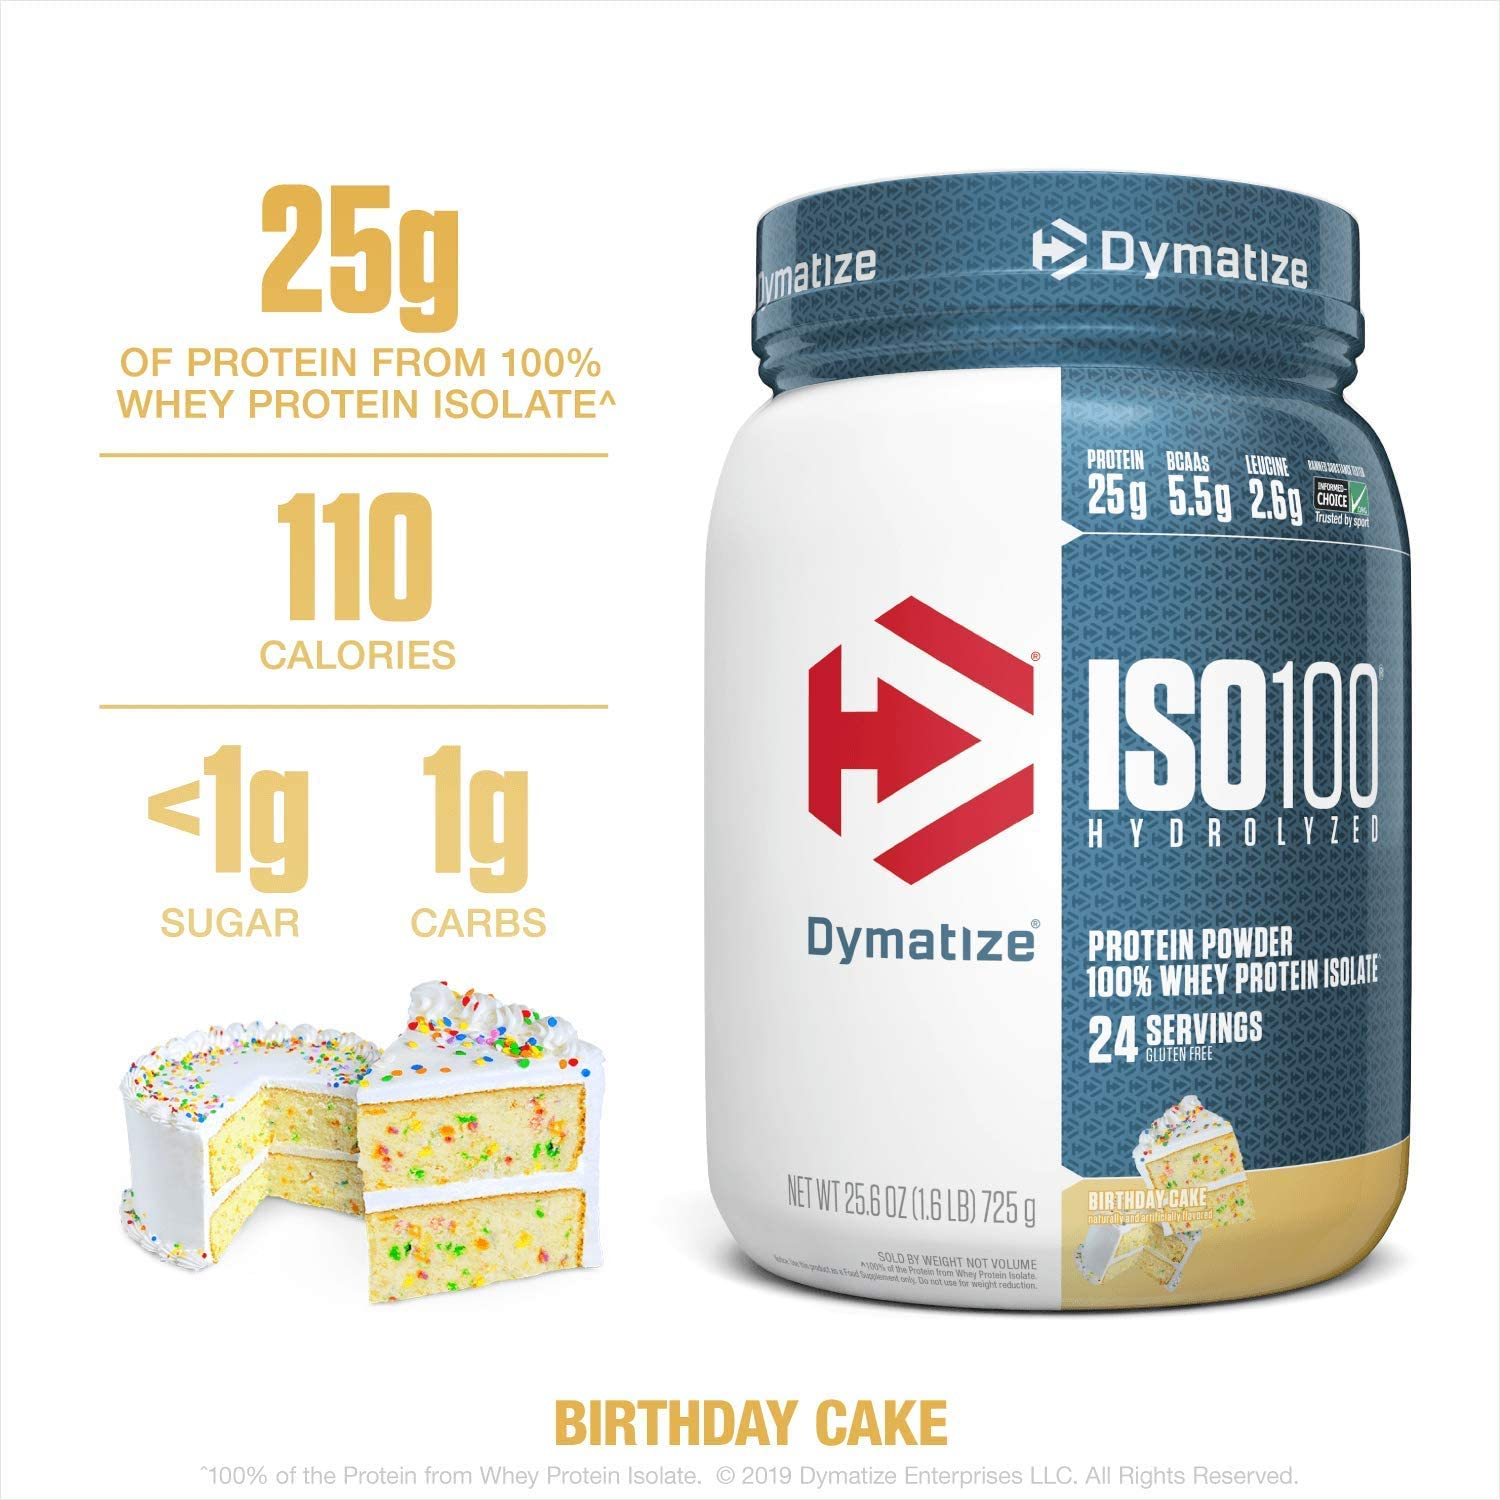 Astounding Dymatize 732 G Birthday Cake Iso 100 Supplement Amazon Co Uk Funny Birthday Cards Online Alyptdamsfinfo